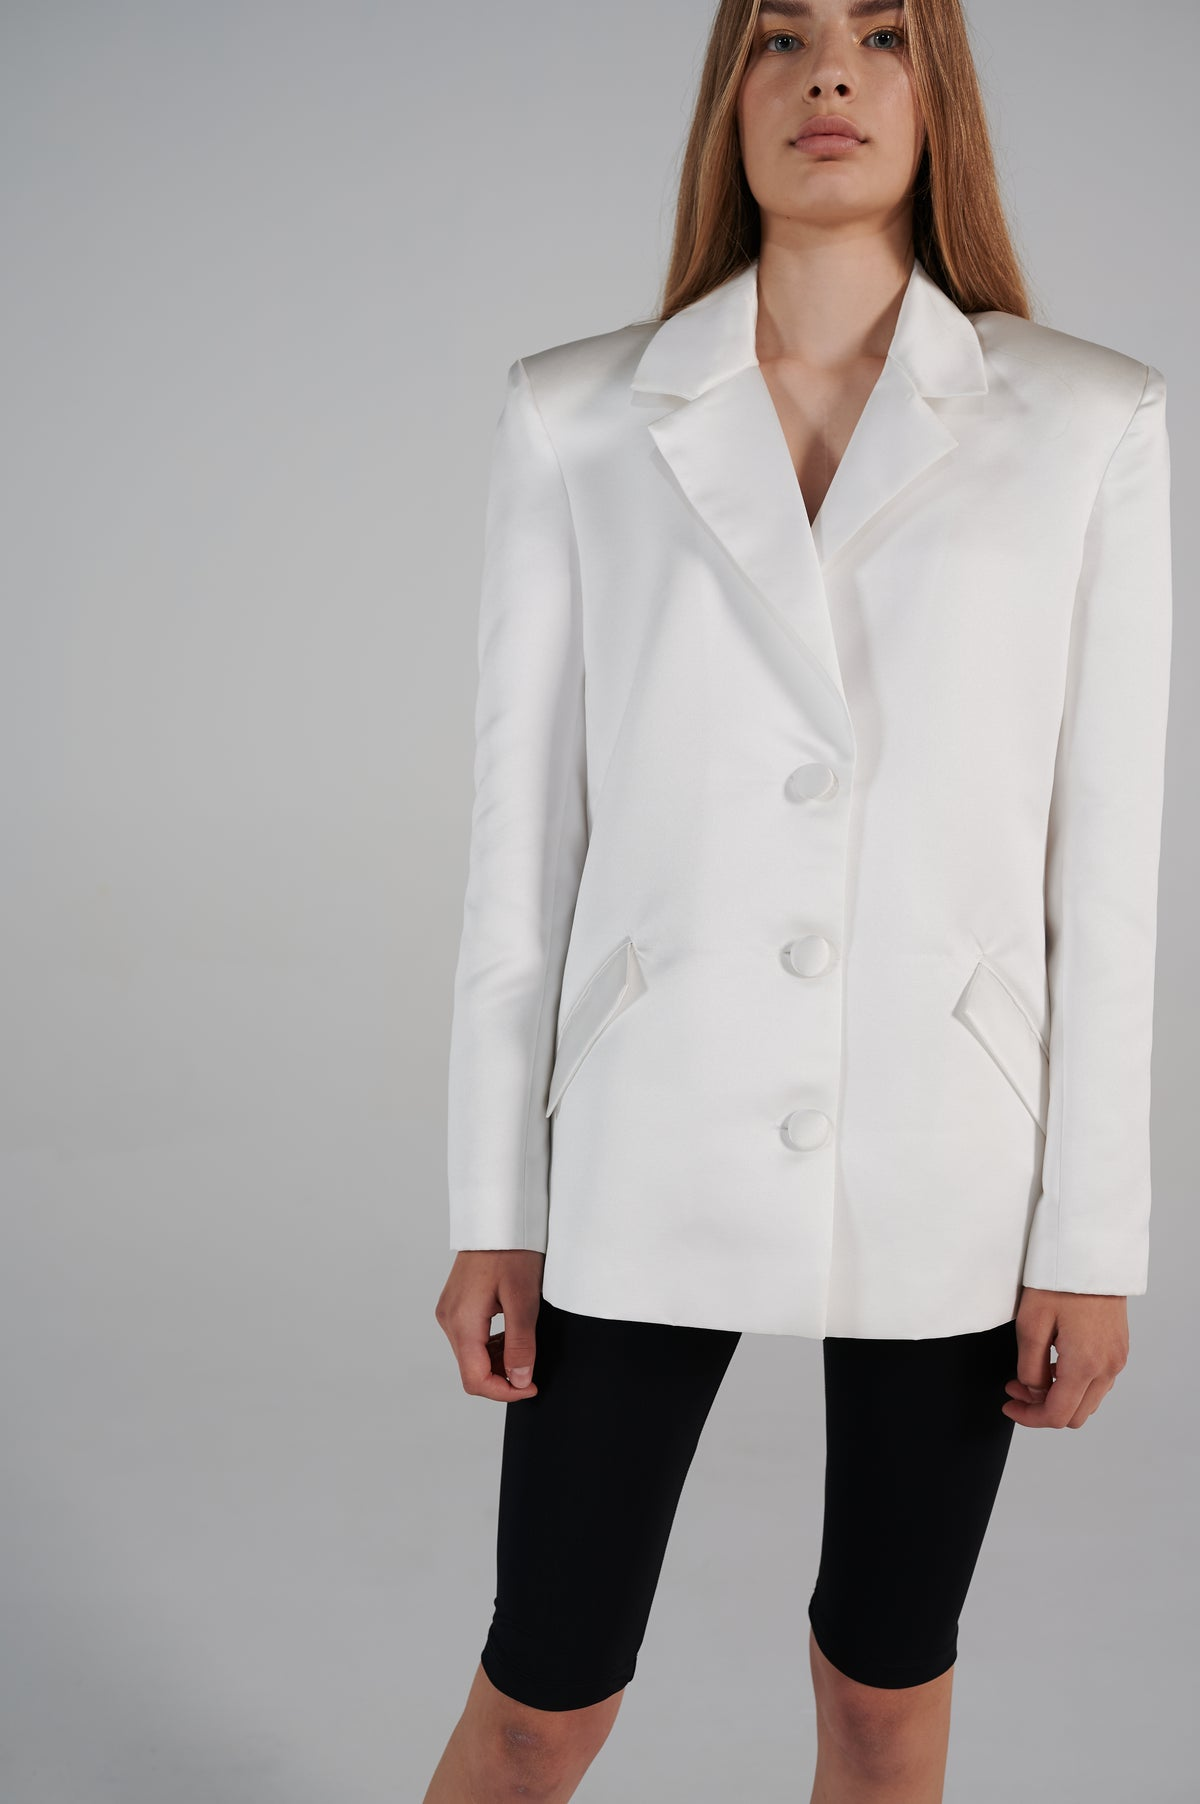 white-tailoring-jacket-details-pockets-slightly-oversized-shoulders-v-neck.jpg